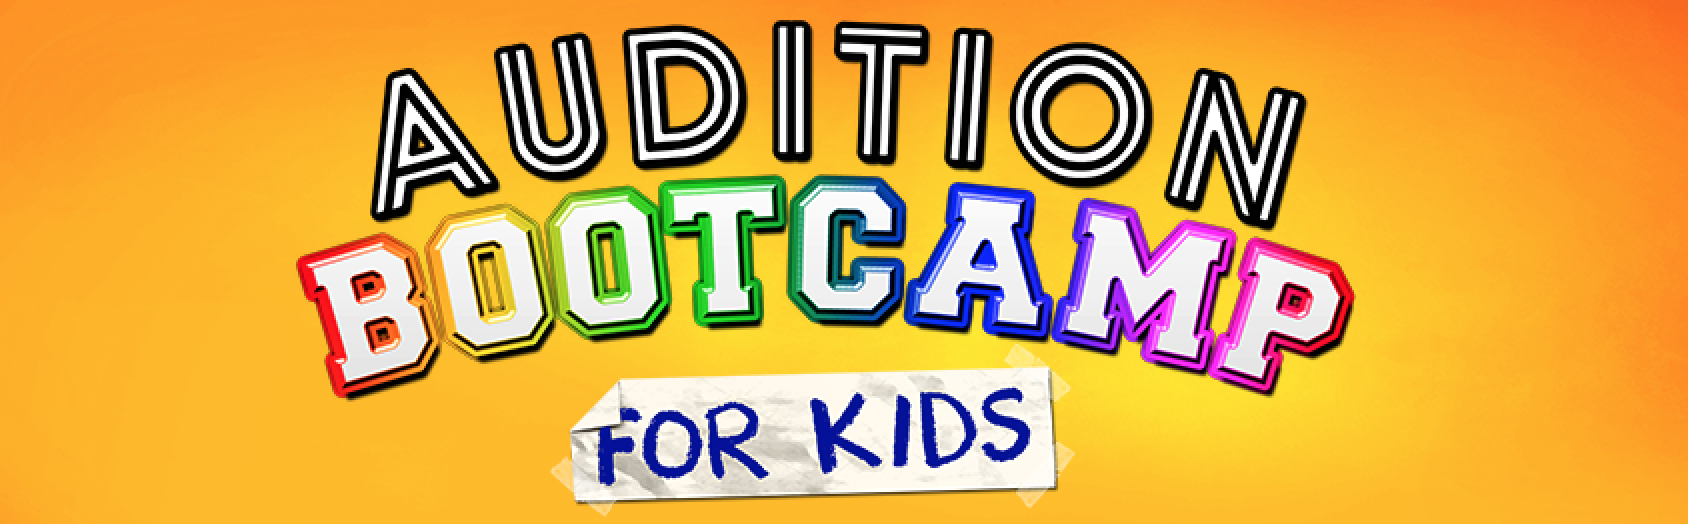 Audition Bootcamp for Kids